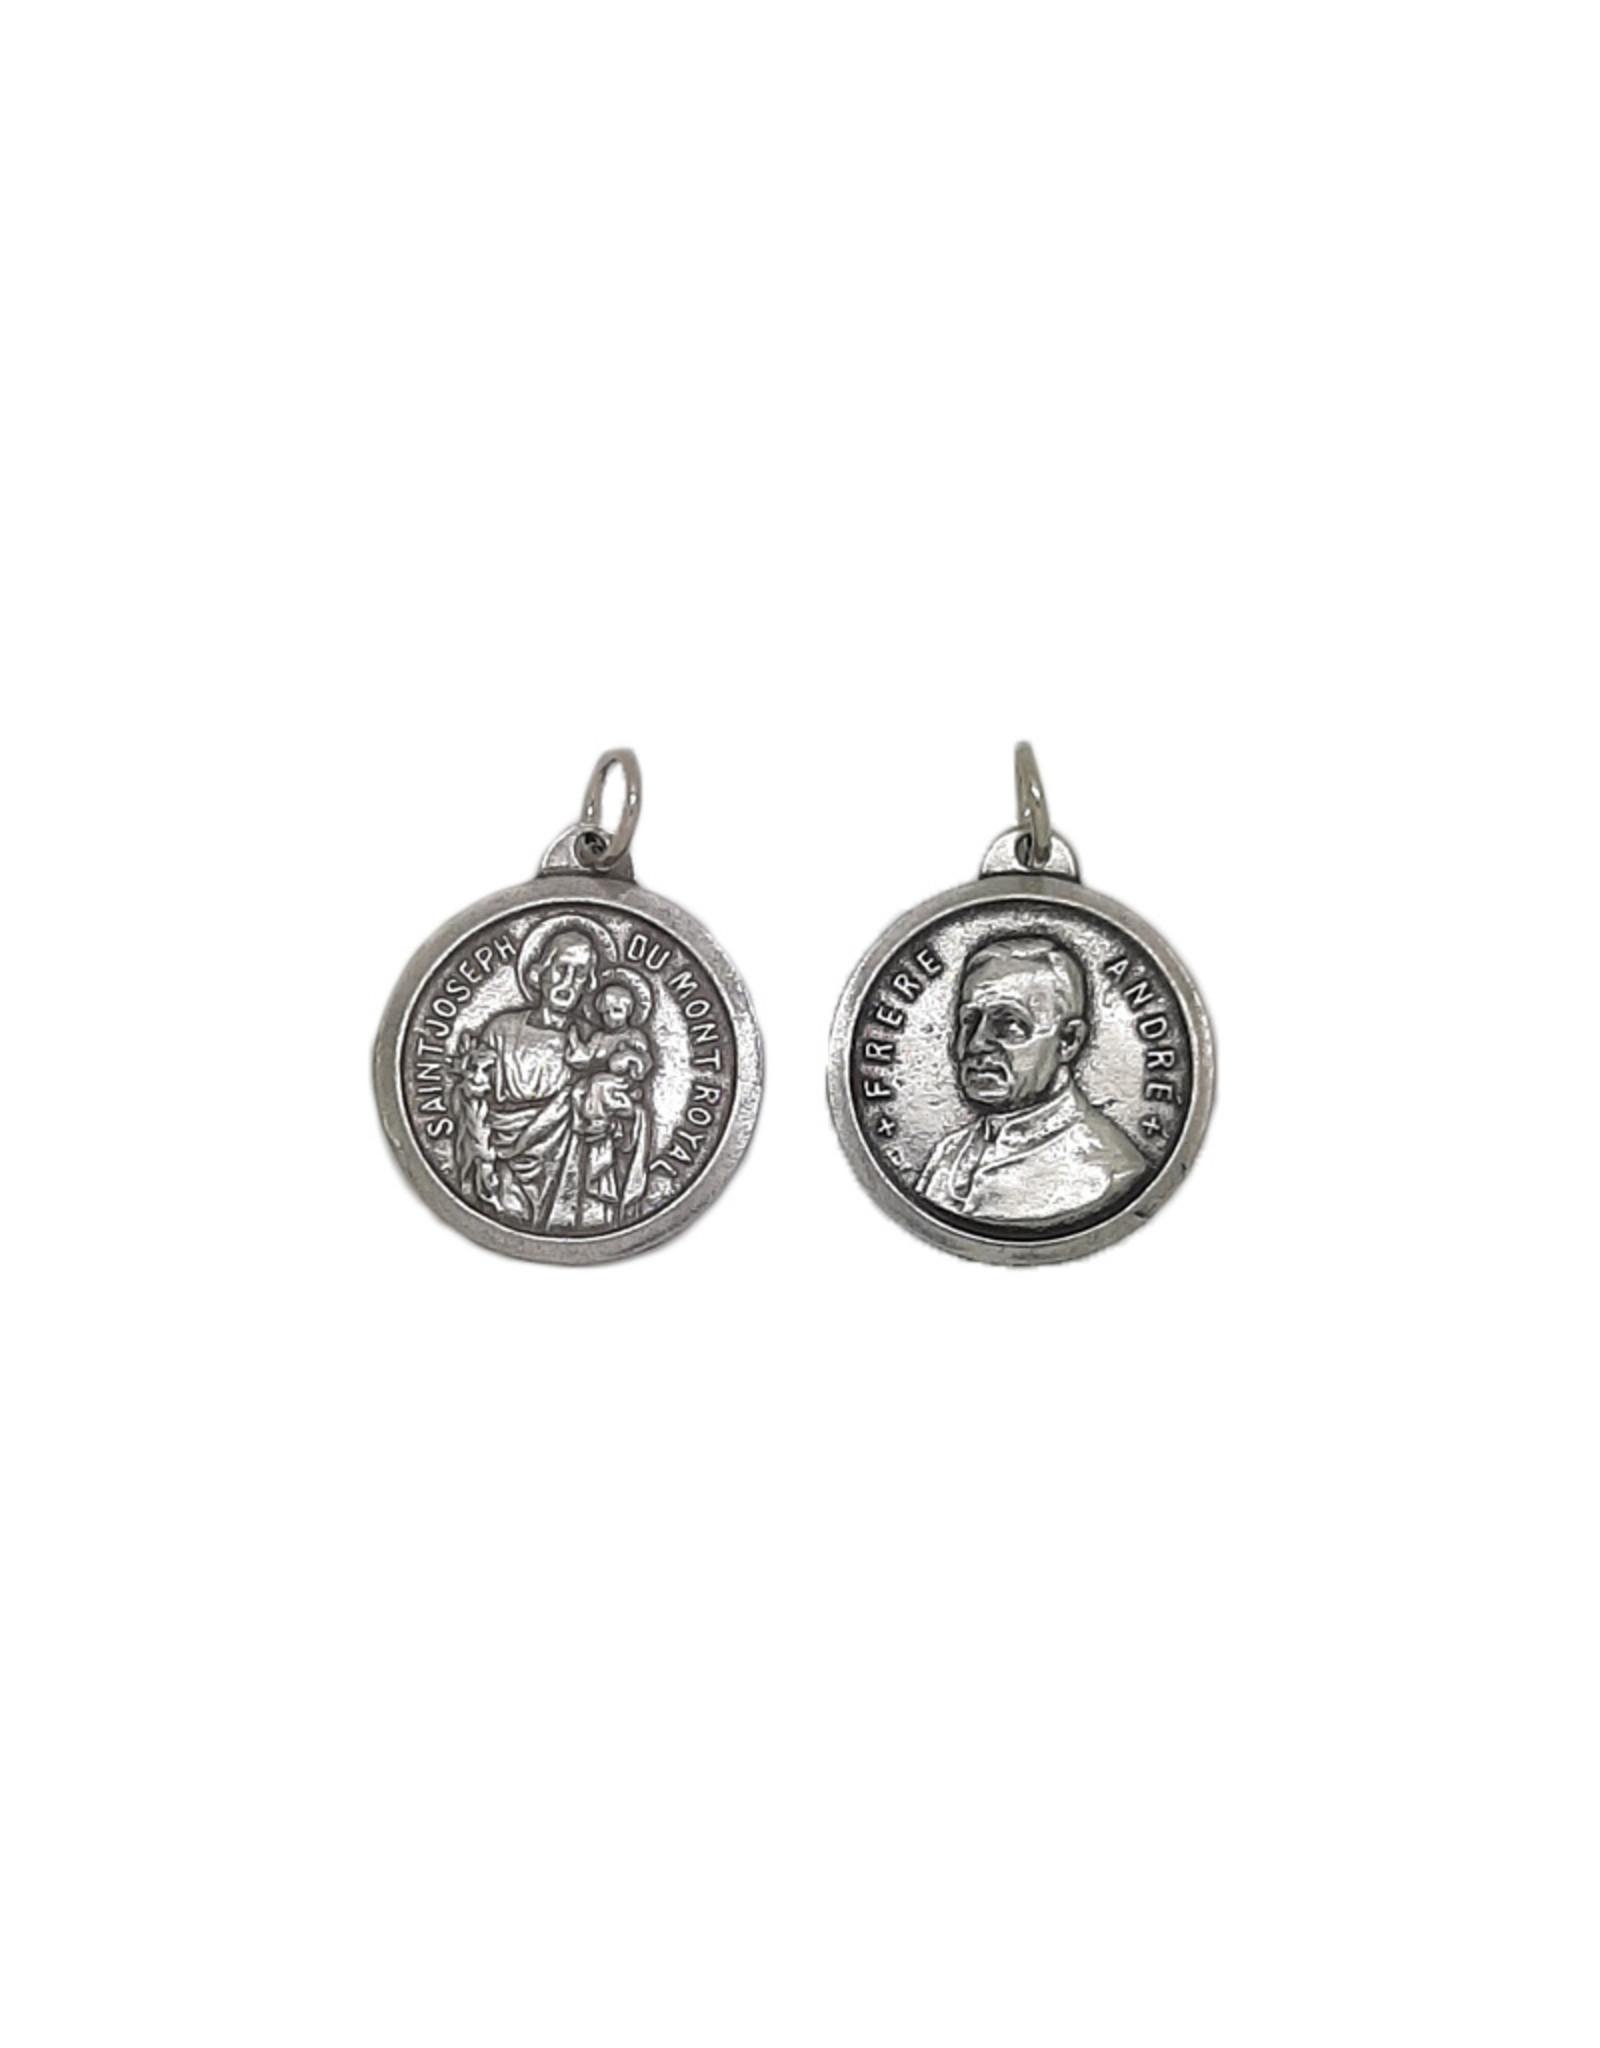 Large Saint Joseph and Brother André medal